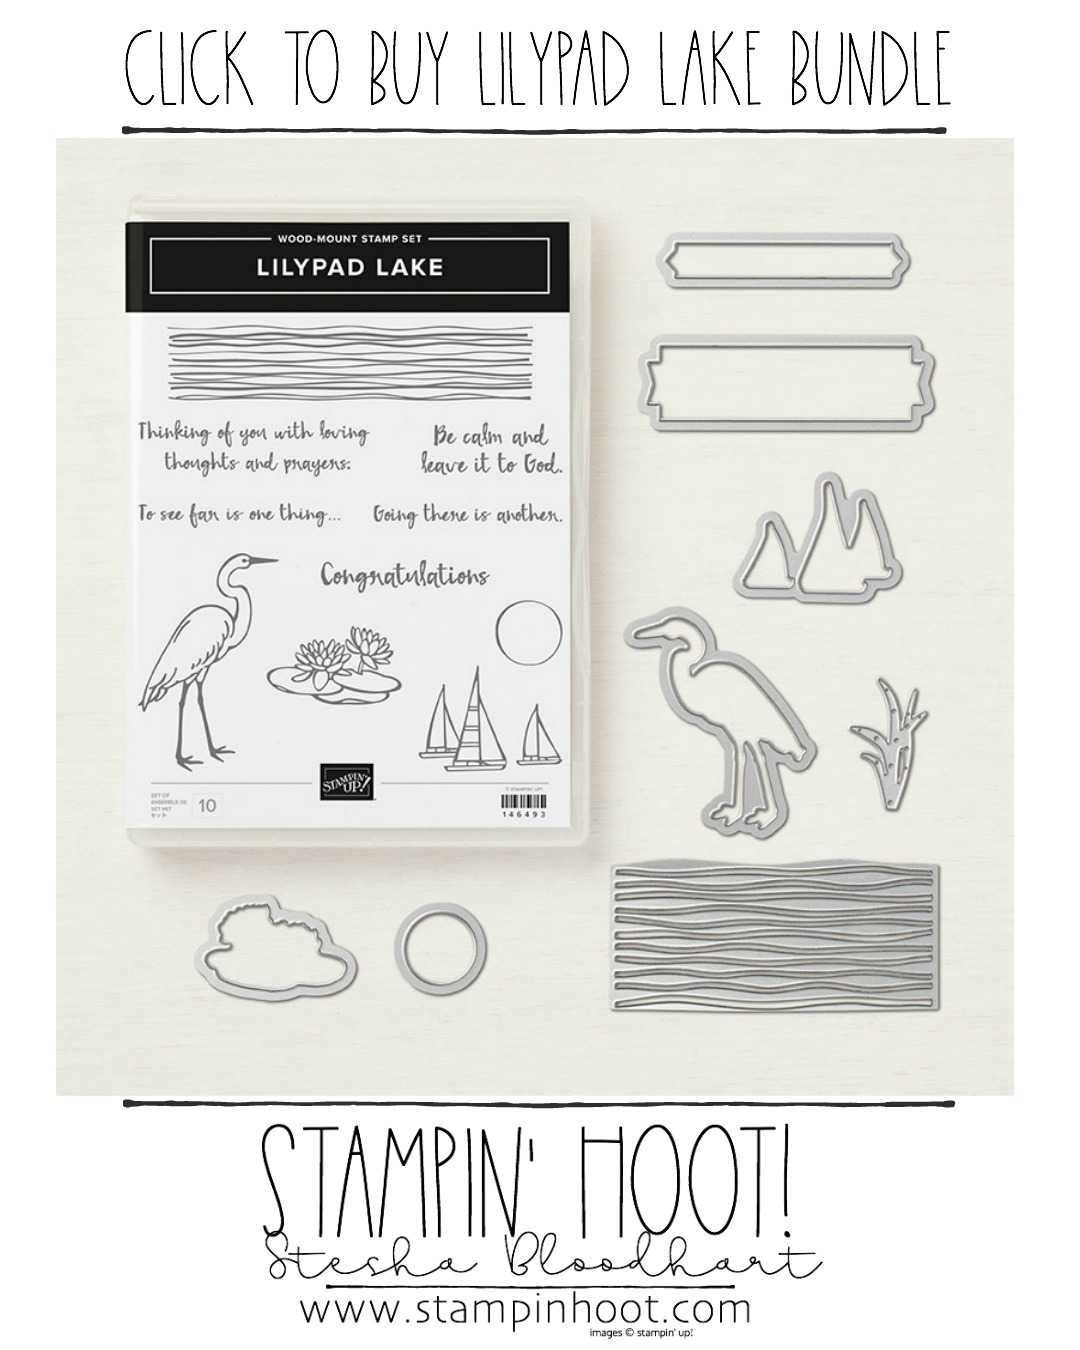 Click to Buy the Lilypad Lake Bundle by Stampin' Up! Available June 1st, 2018. Shop with Stampin' Hoot! Stesha Bloodhart #steshabloodhart #stampinhoot